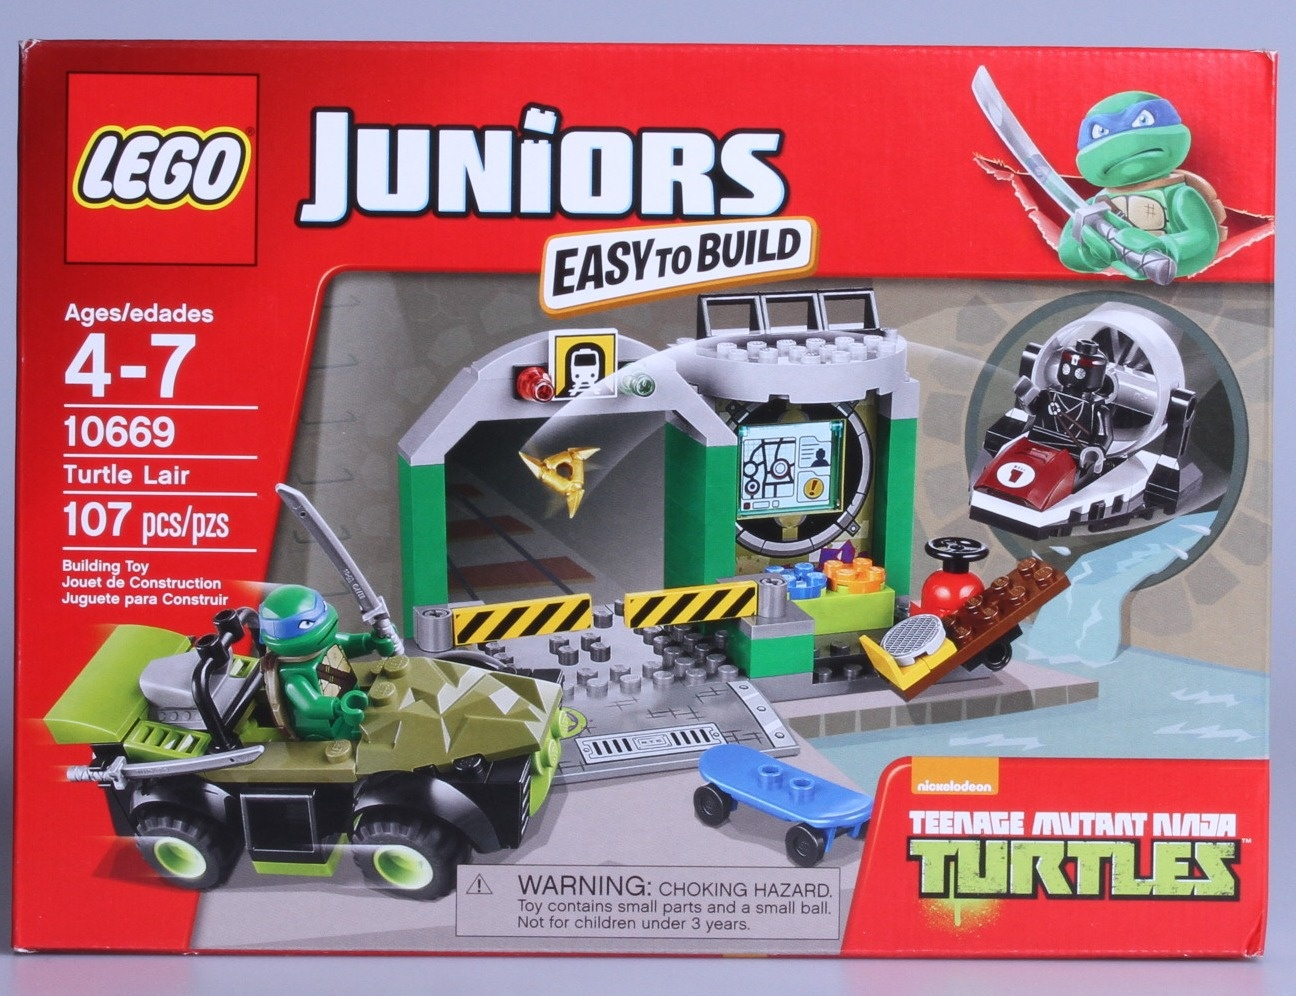 Online Toy Store Buy Toys Lego Juniors In Fiji 10720 Police Helicopter Chase